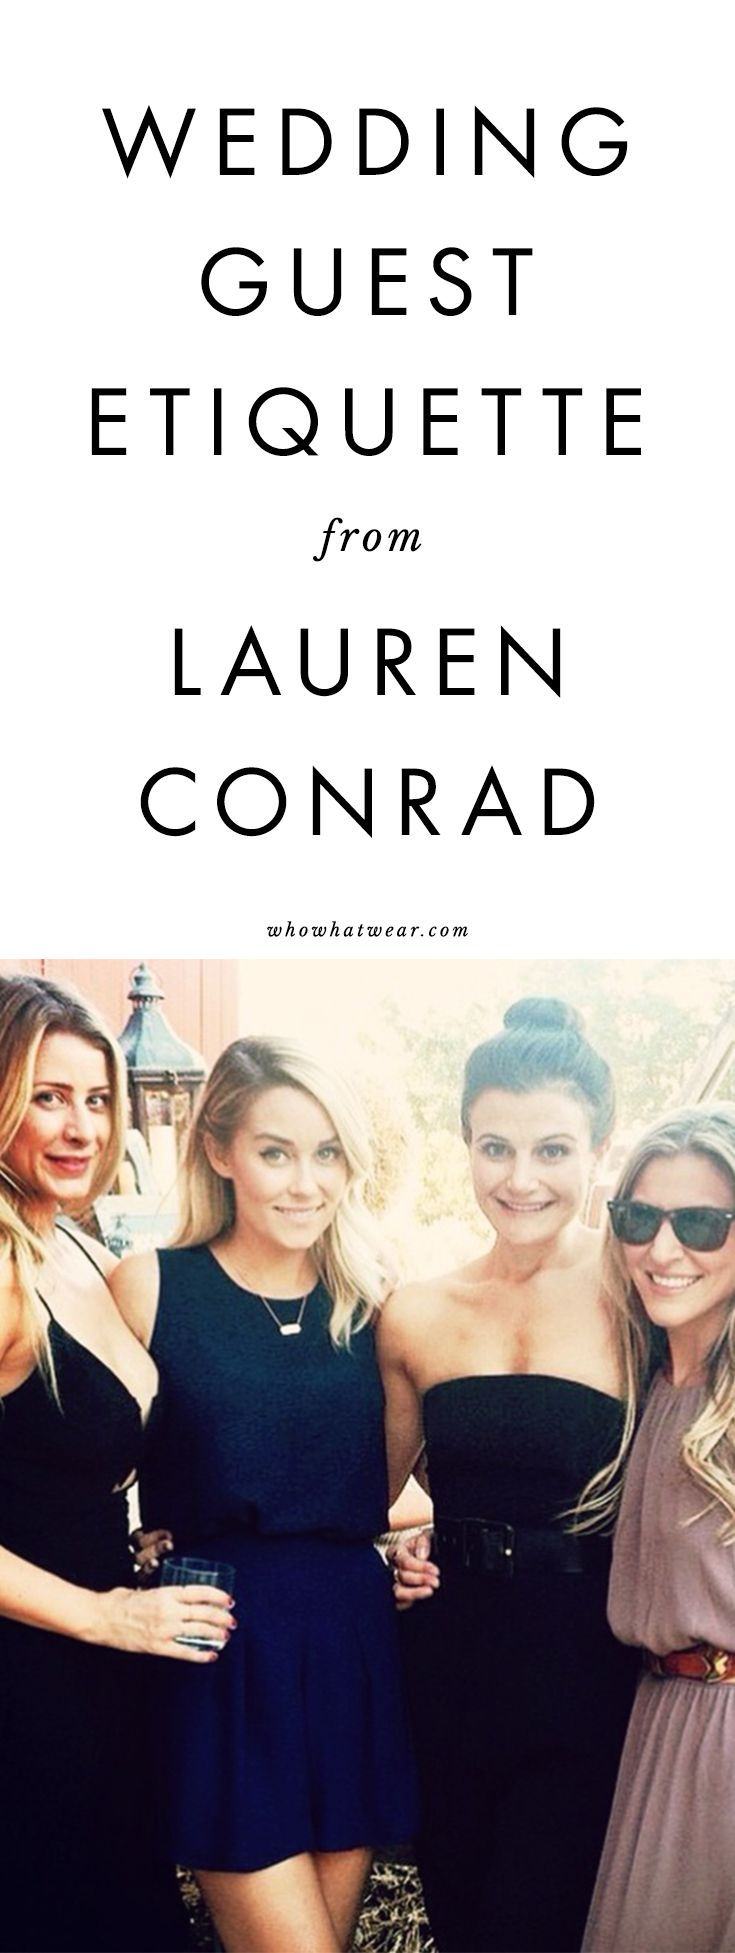 Wedding guest etiquette from Lauren Conrad